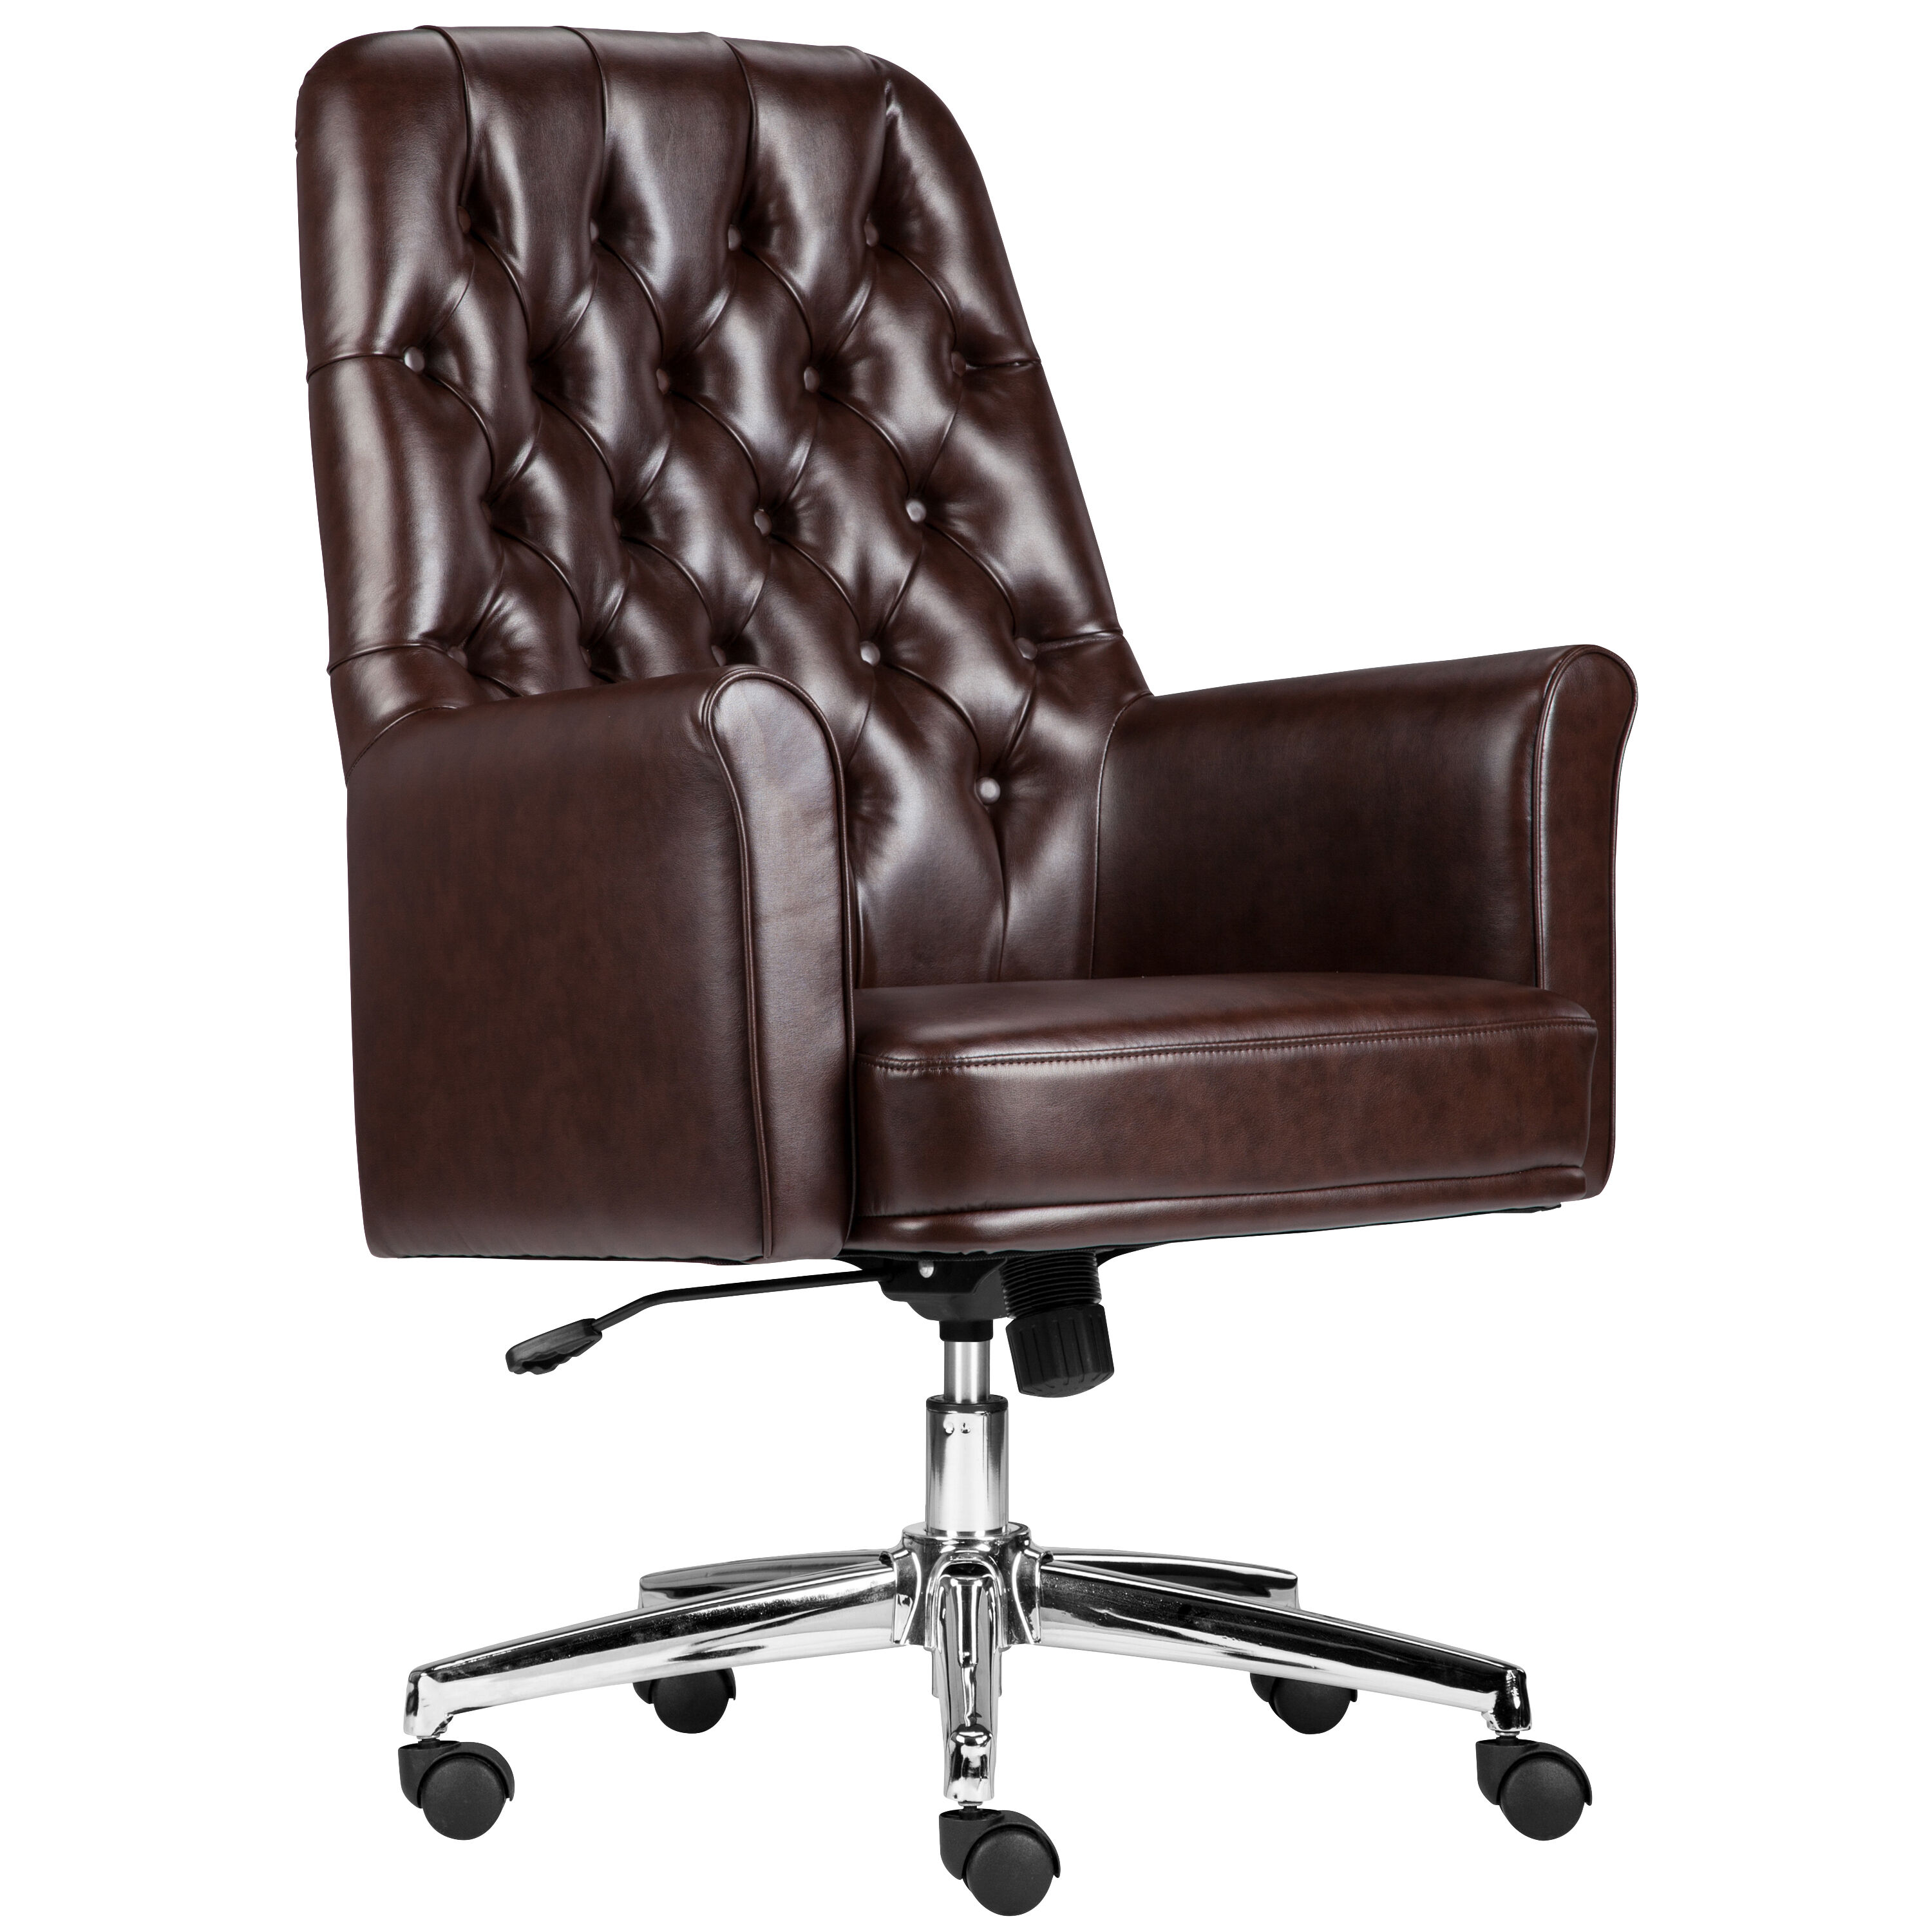 leather executive office chair plexiglass folding chairs brown mid back bt 444 bn gg bizchair com images our traditional tufted swivel